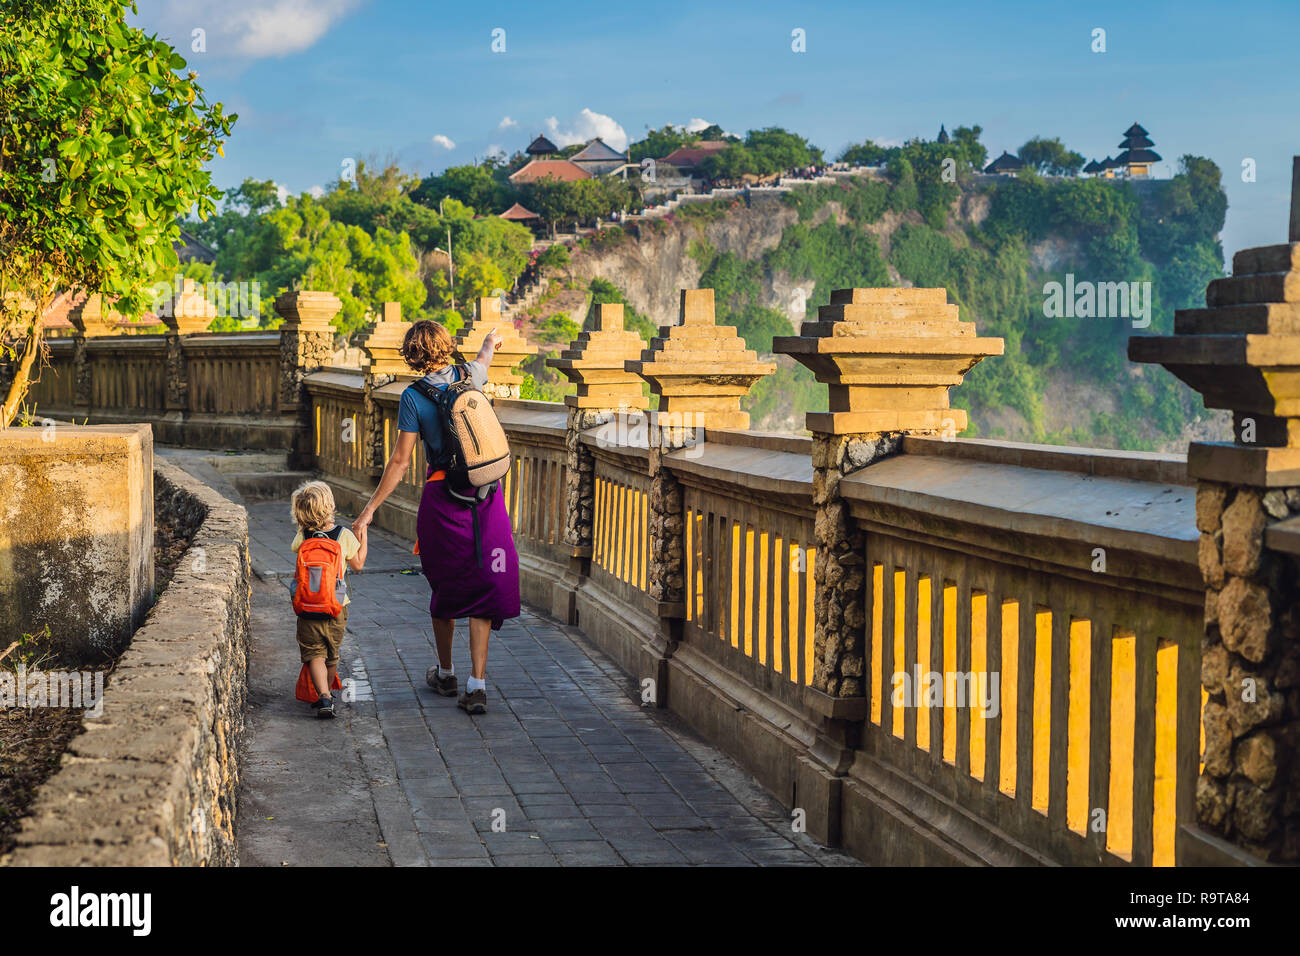 Dad And Son Travelers In Pura Luhur Uluwatu Temple Bali Indonesia Amazing Landscape Cliff With Blue Sky And Sea Traveling With Kids Concept Stock Photo Alamy